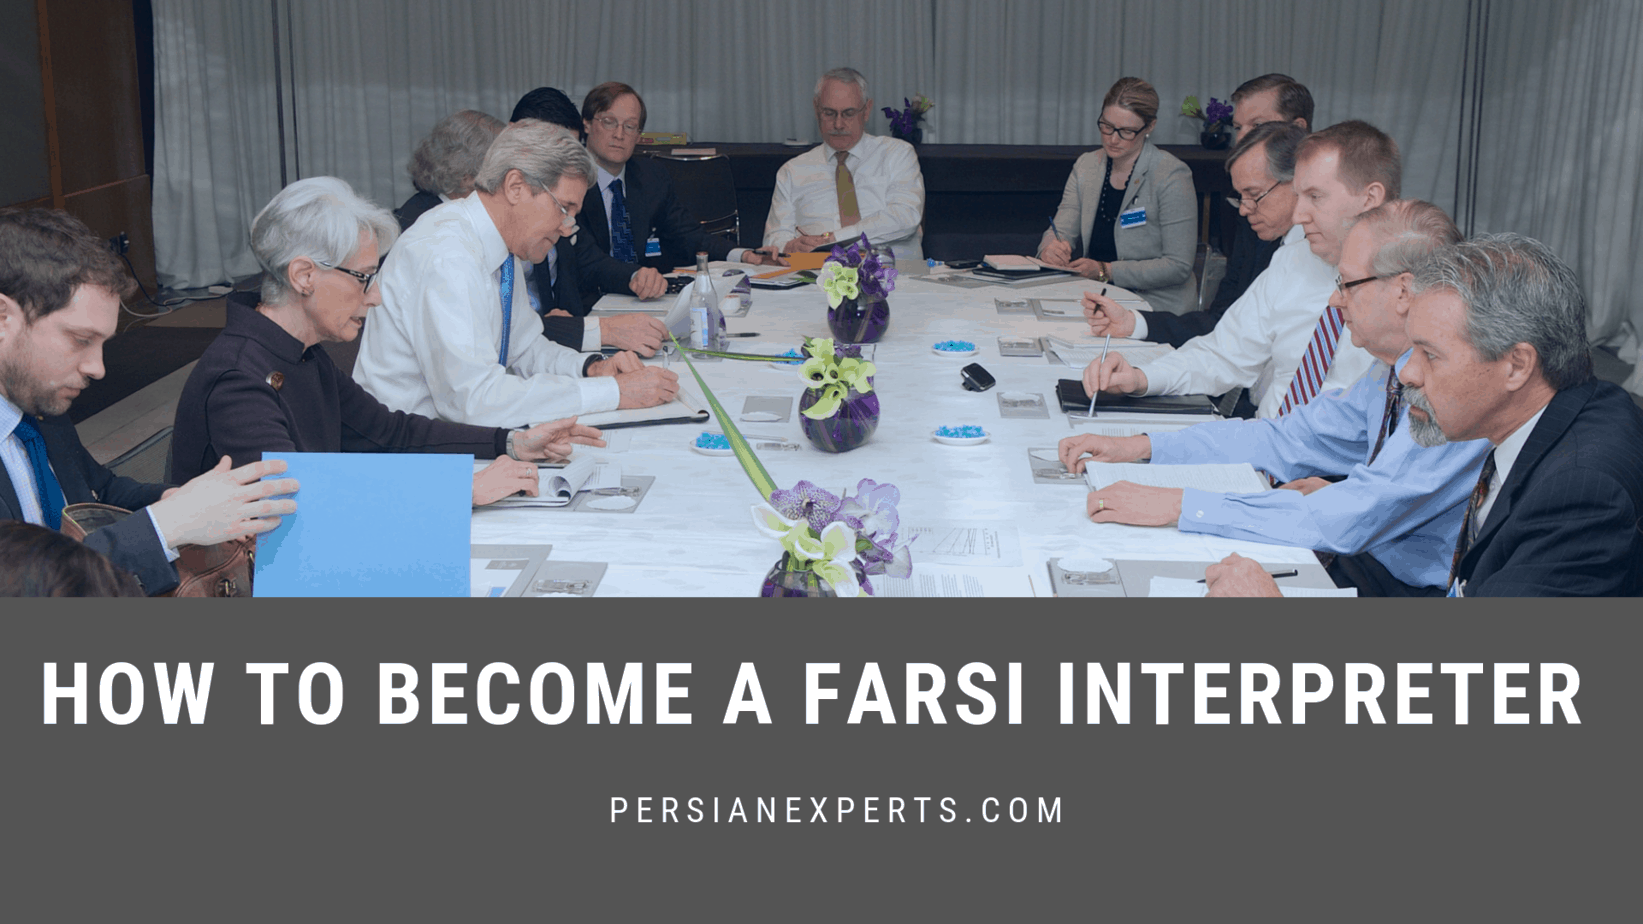 How to Become a Farsi Interpreter